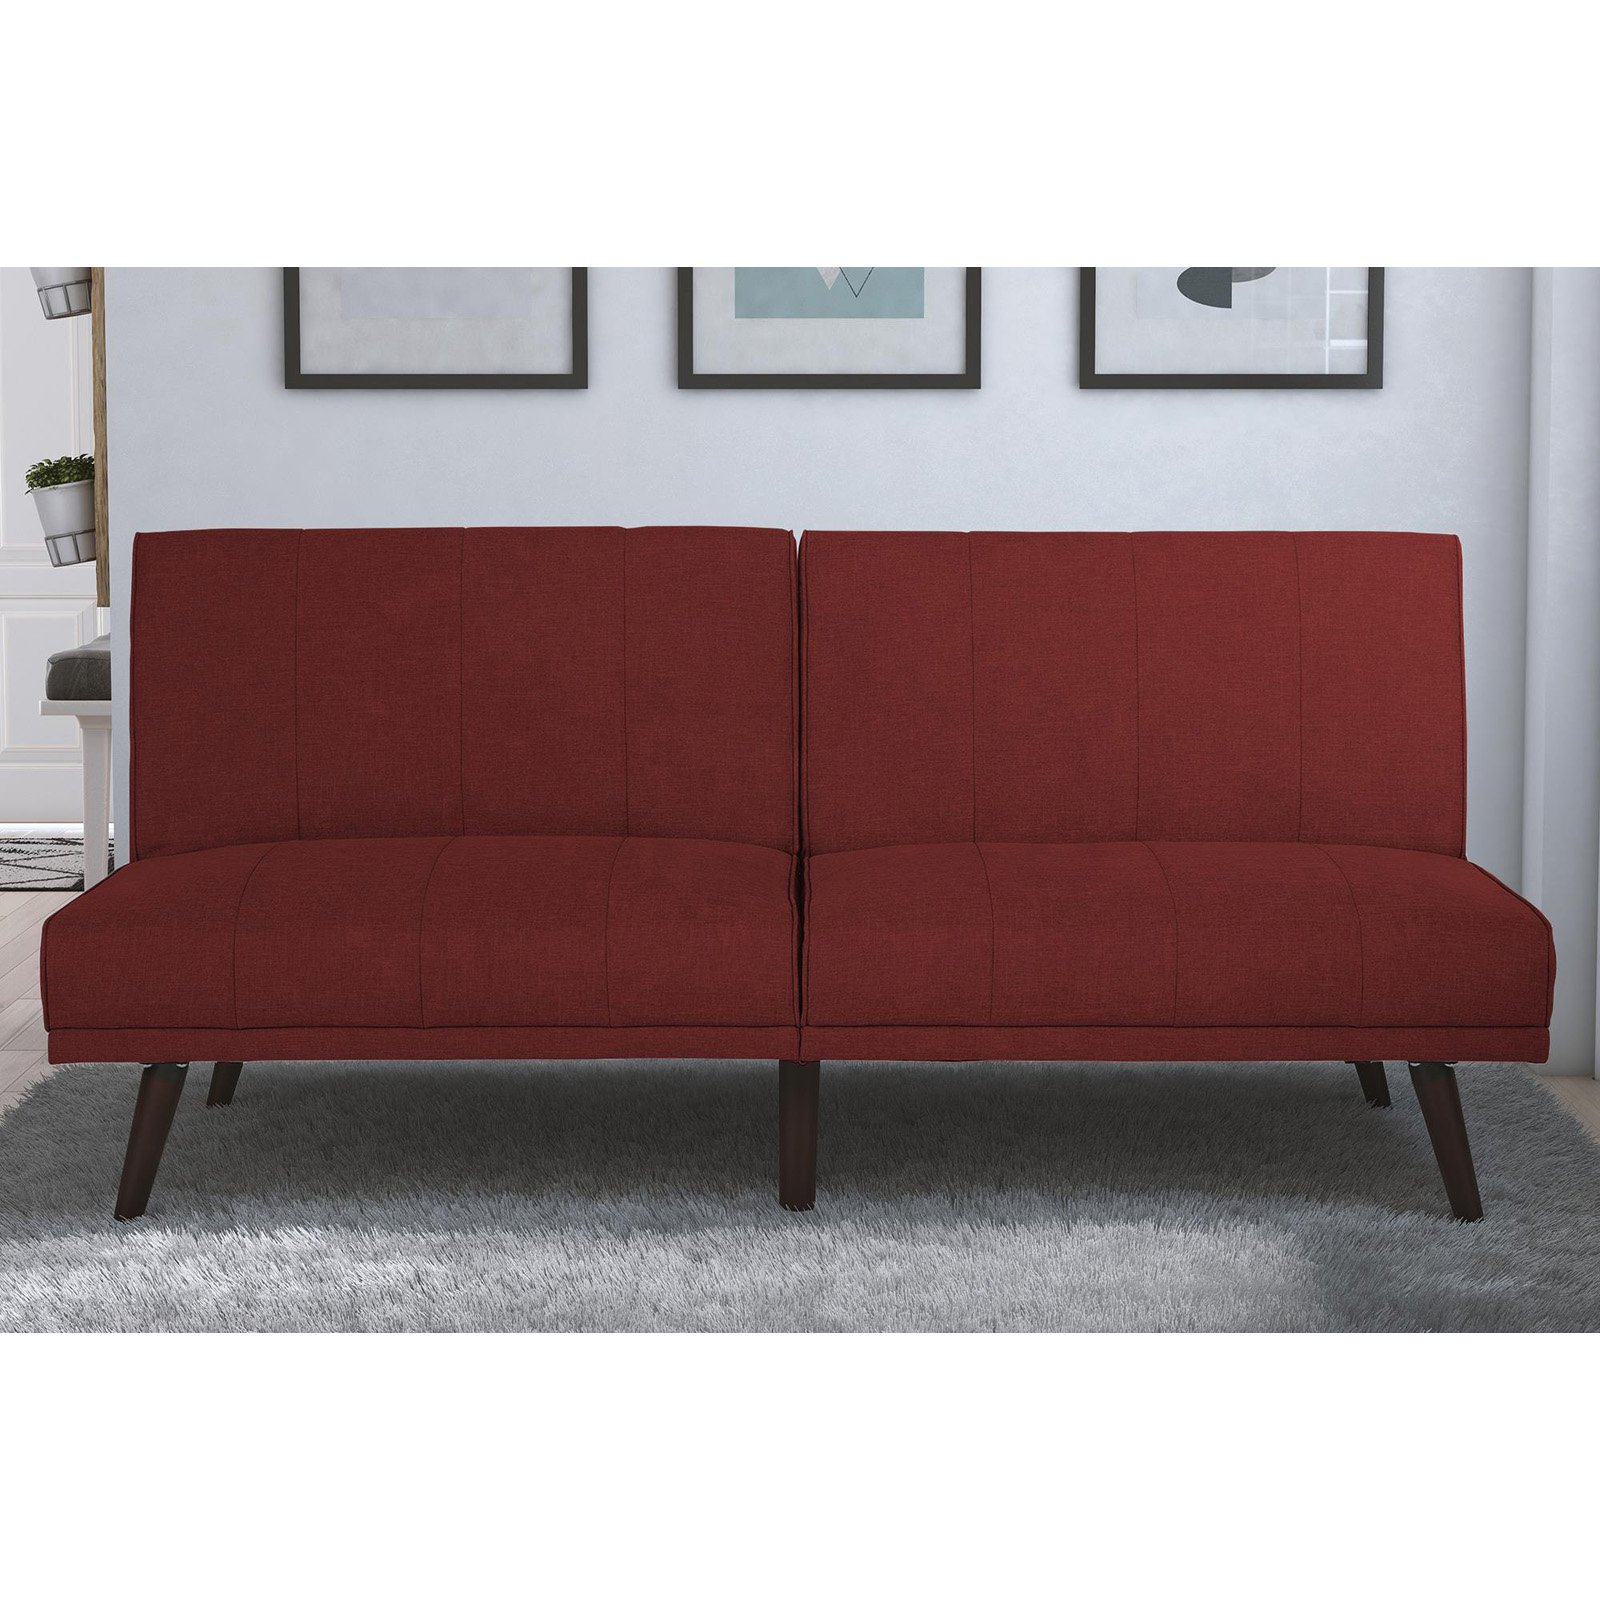 DHP Lone Pine Linen Upholstered Futon, Multiple Colors